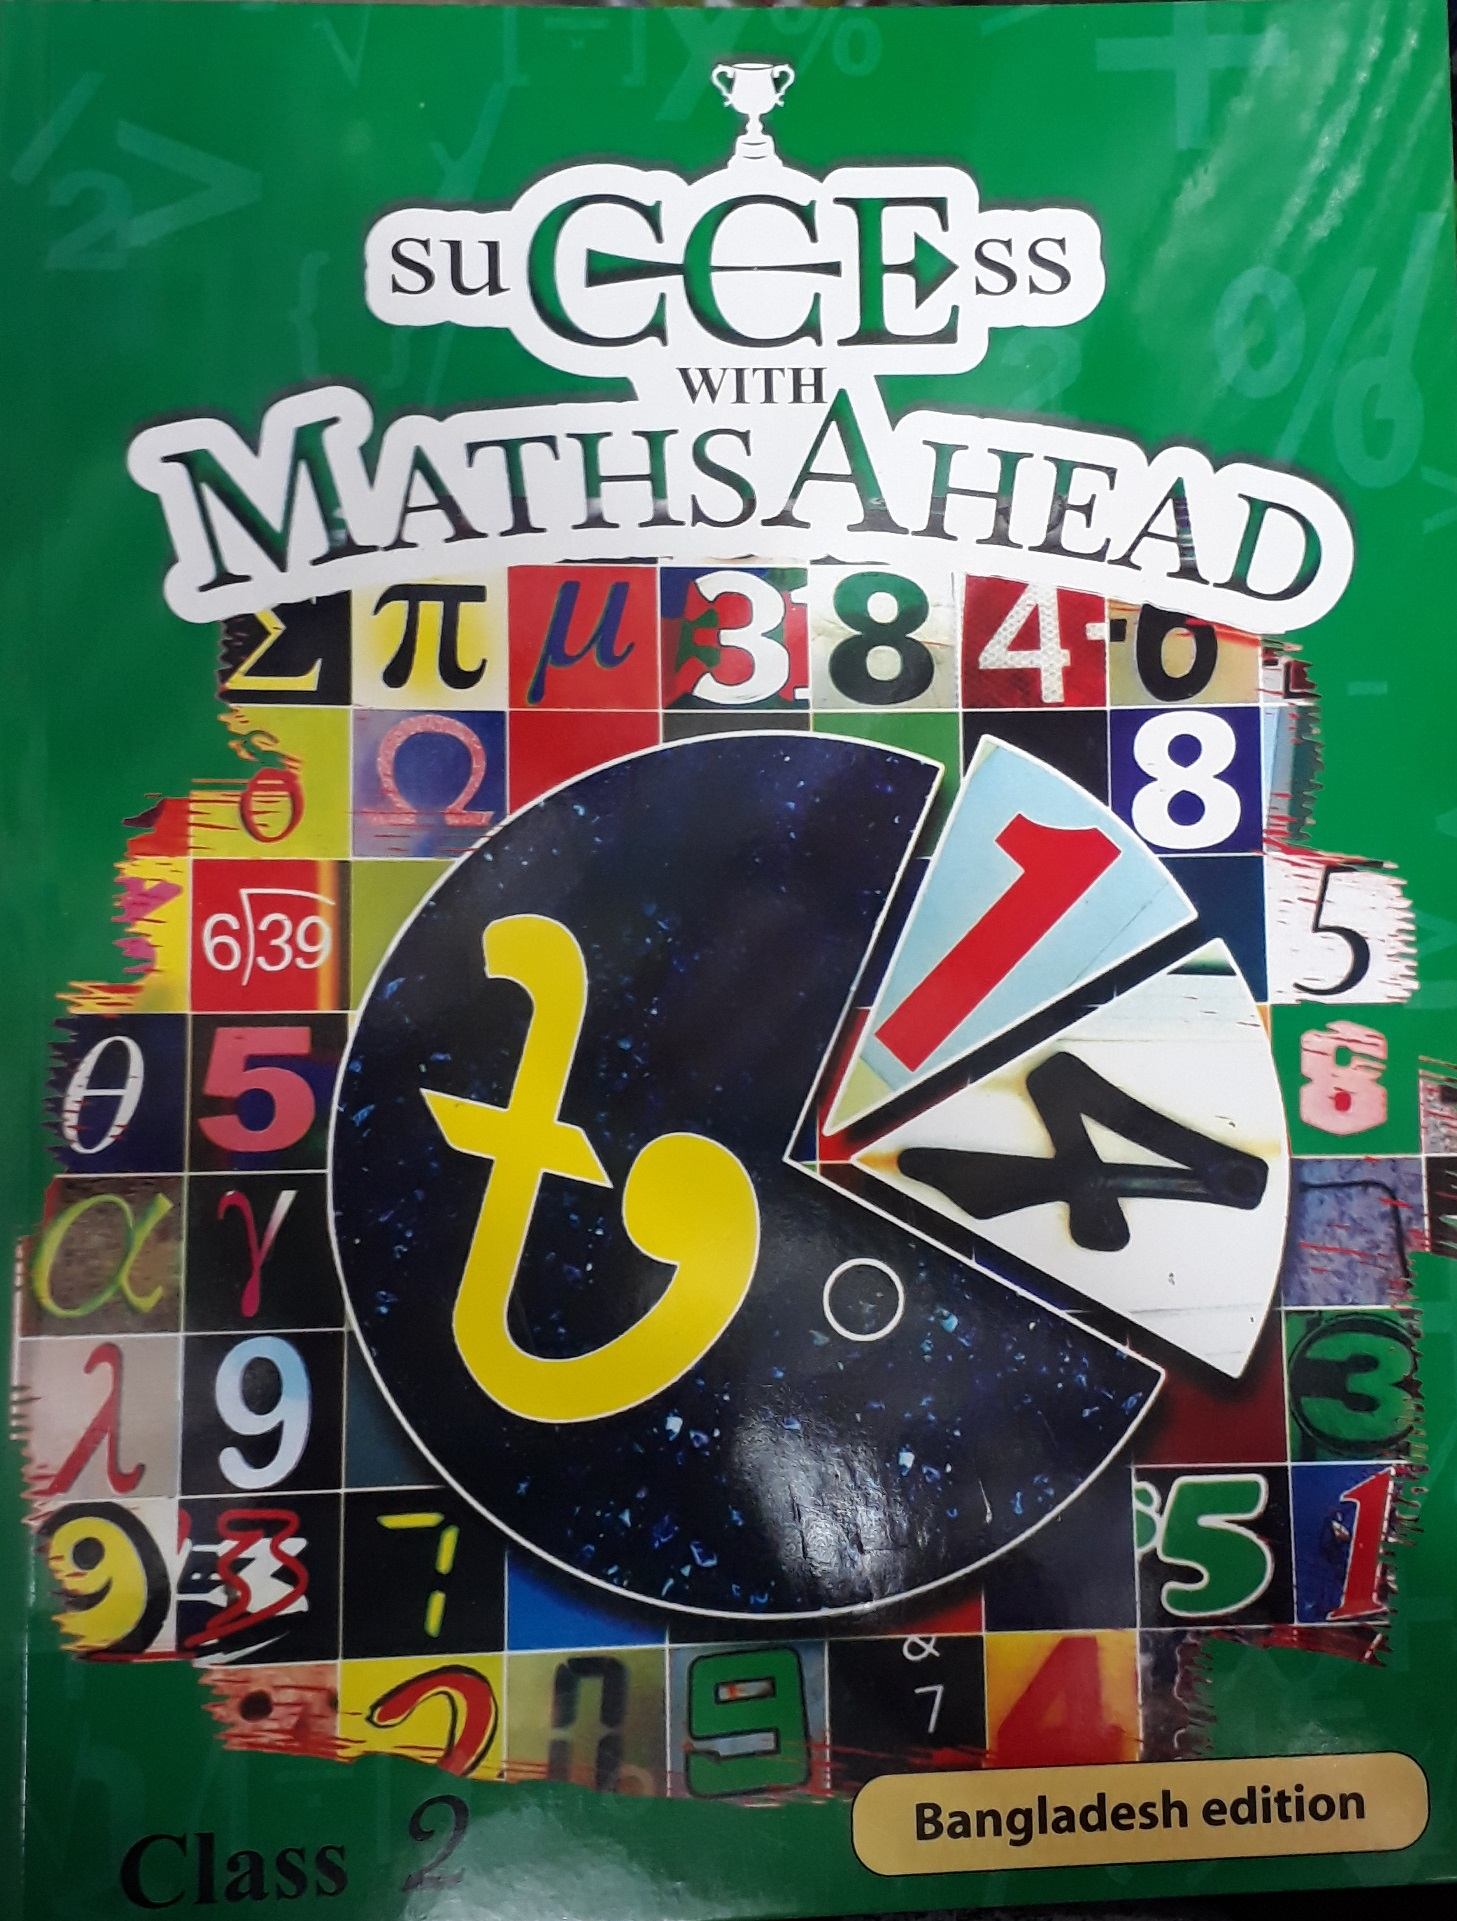 SUCCESS WITH MATHS AHEAD – 2 ( BANGLADESH EDITION )